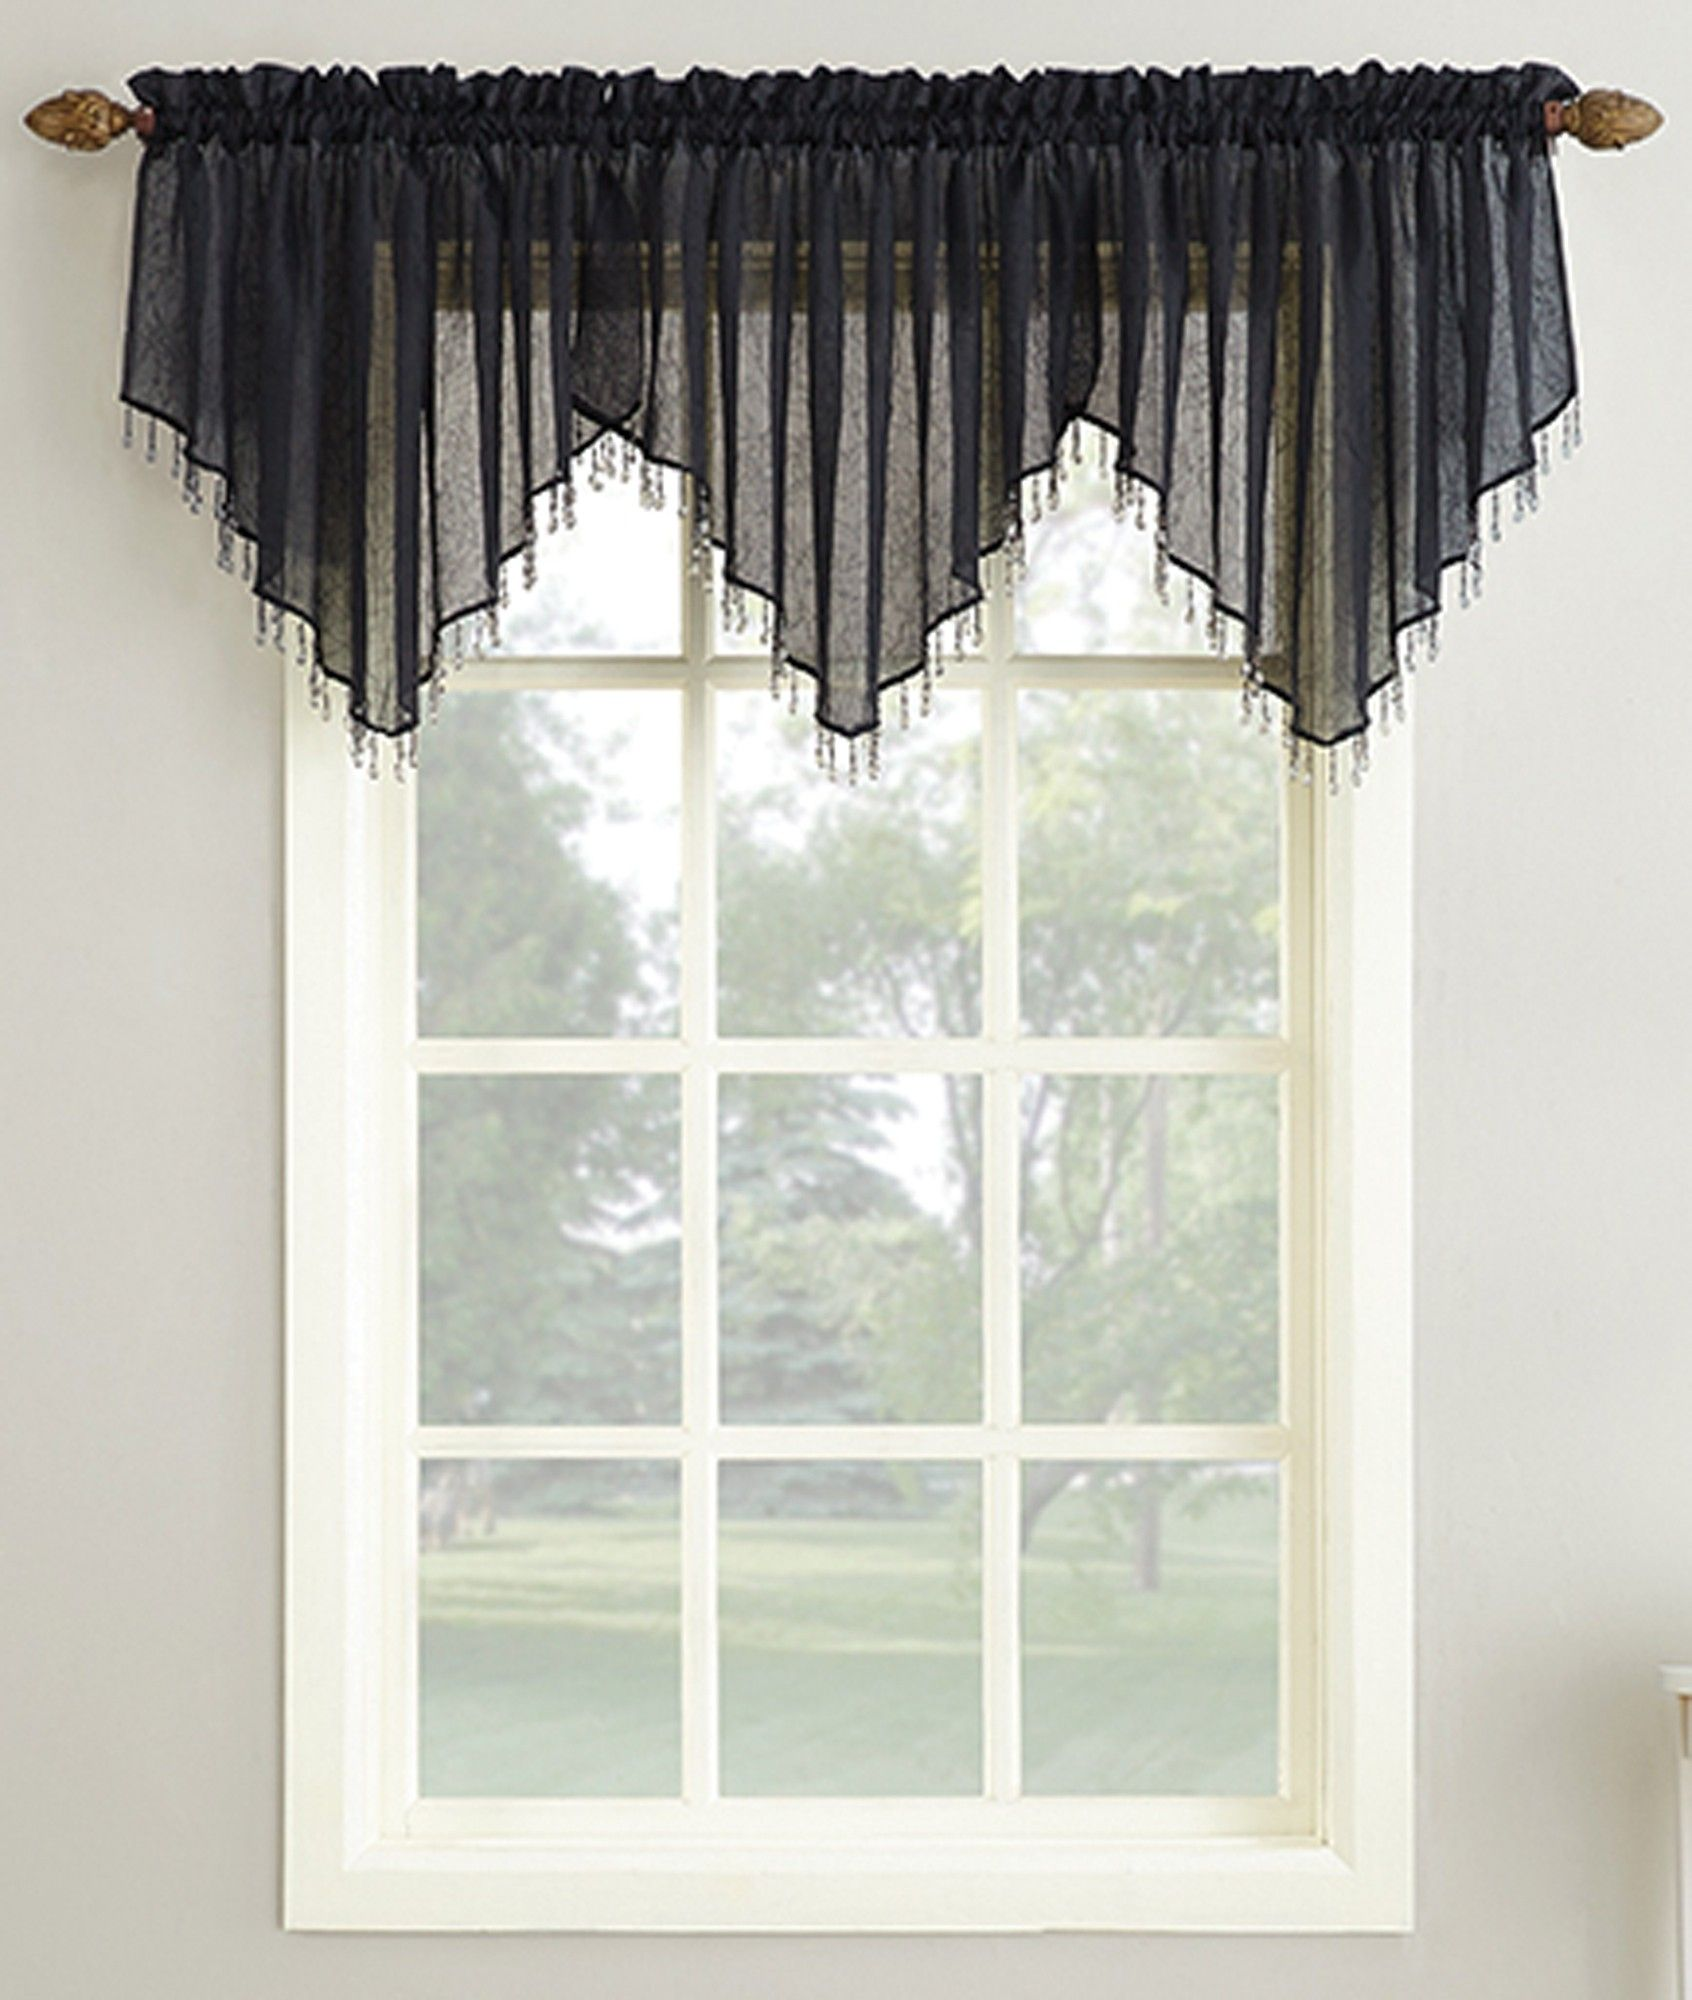 Erica Crushed Voile Rod Pocket Ascot Valance Curtain Valance